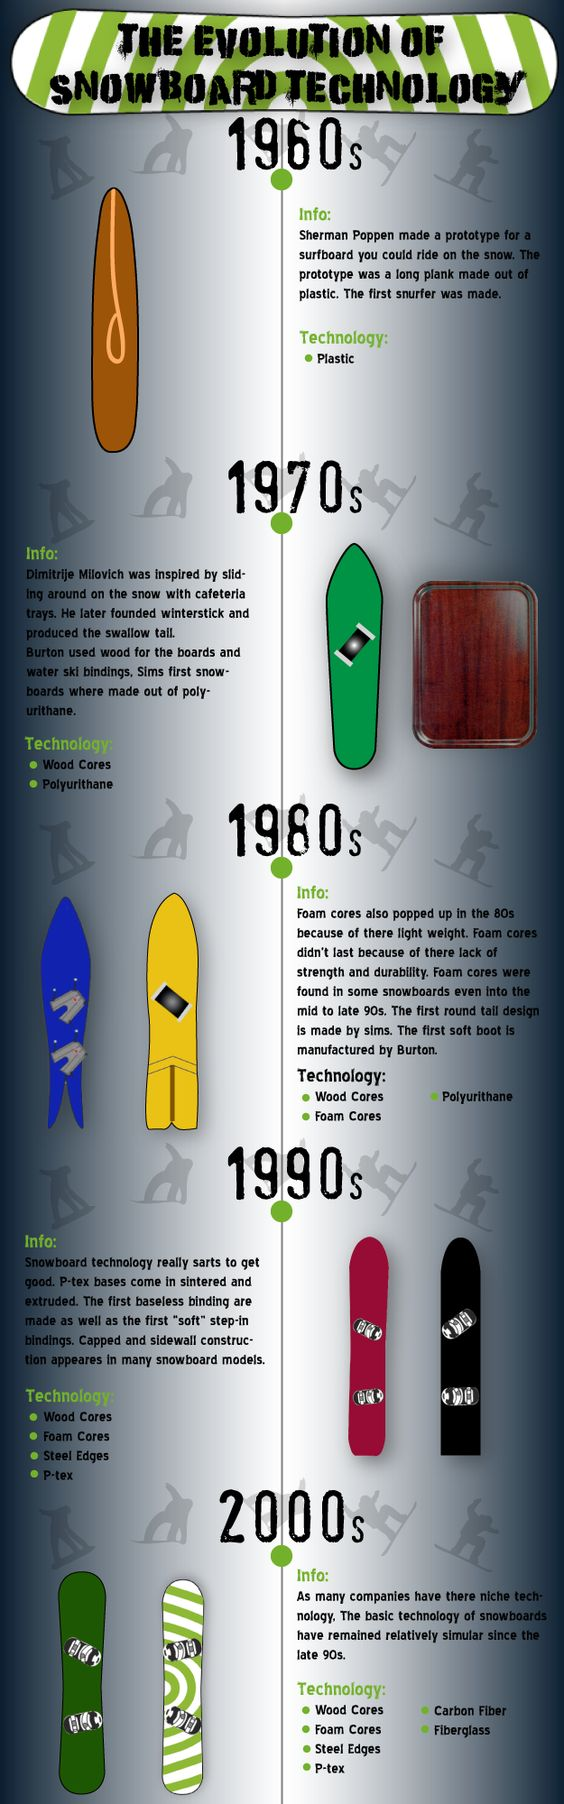 A basic breakdown of snowboard technology from the 60's until now.